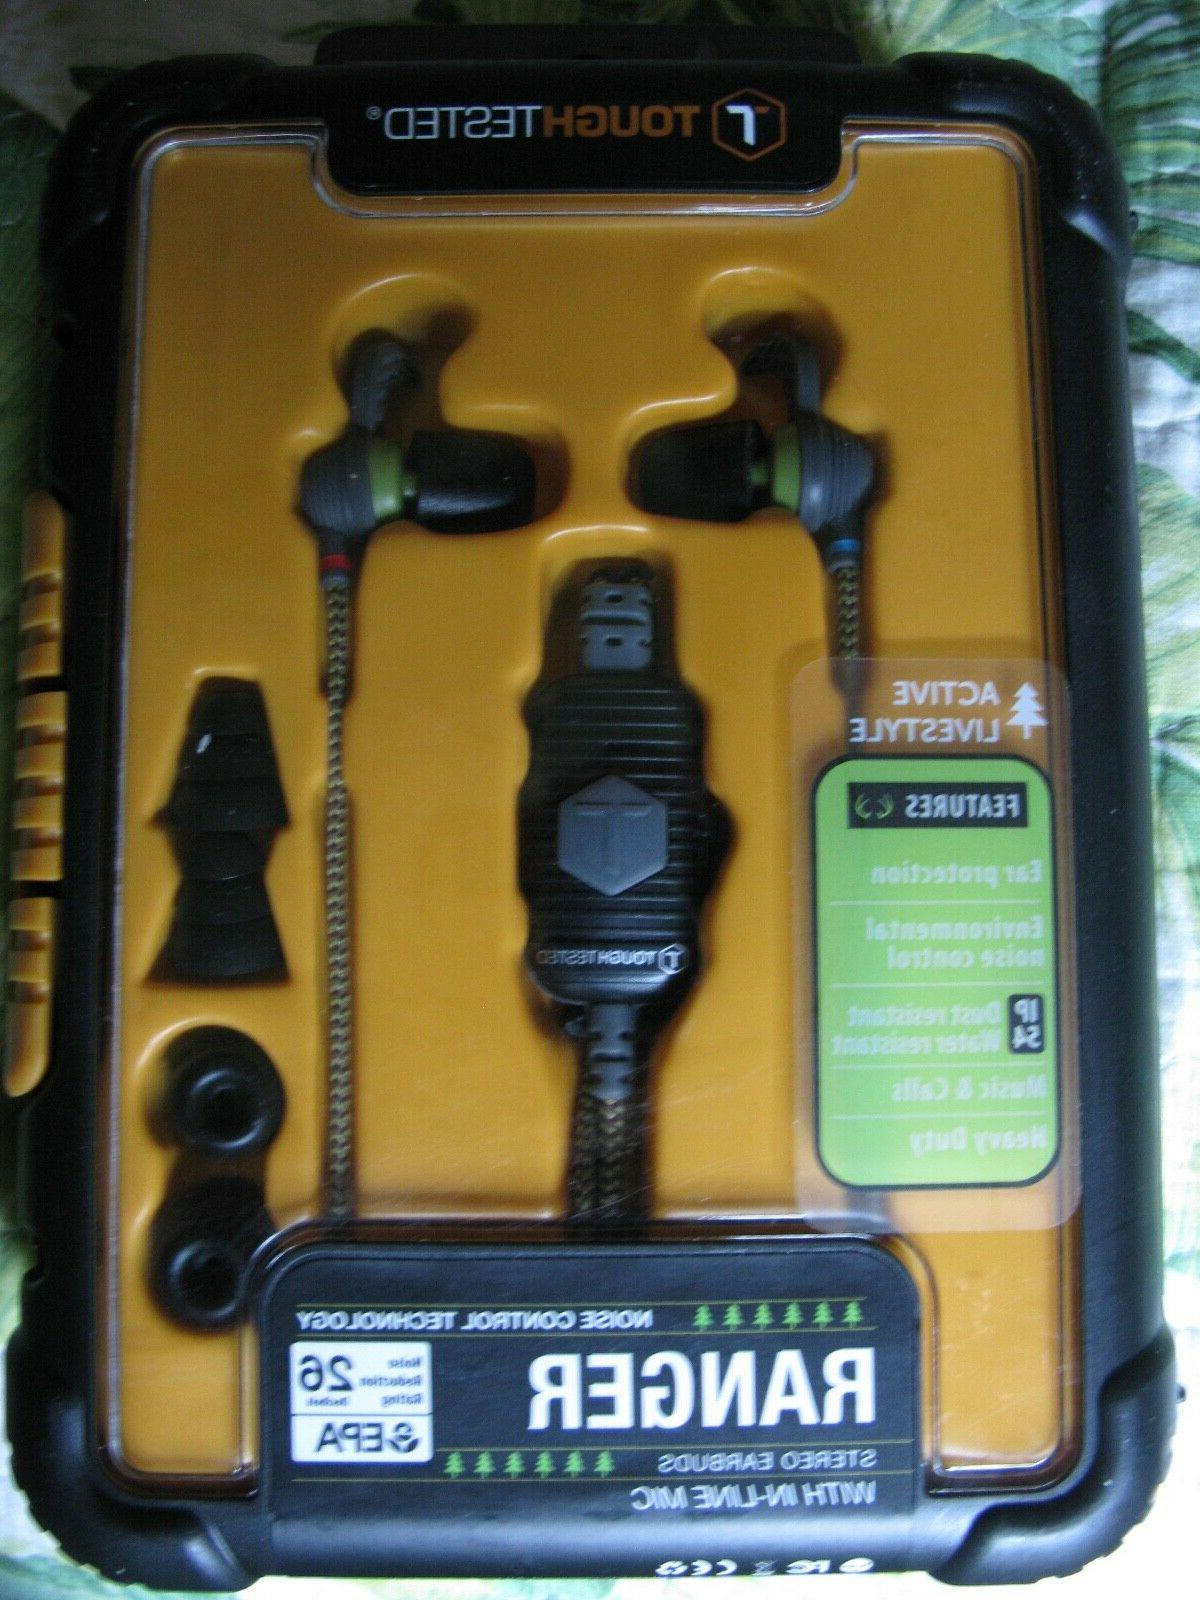 ToughTested Ranger earbuds with in-line wired wireless